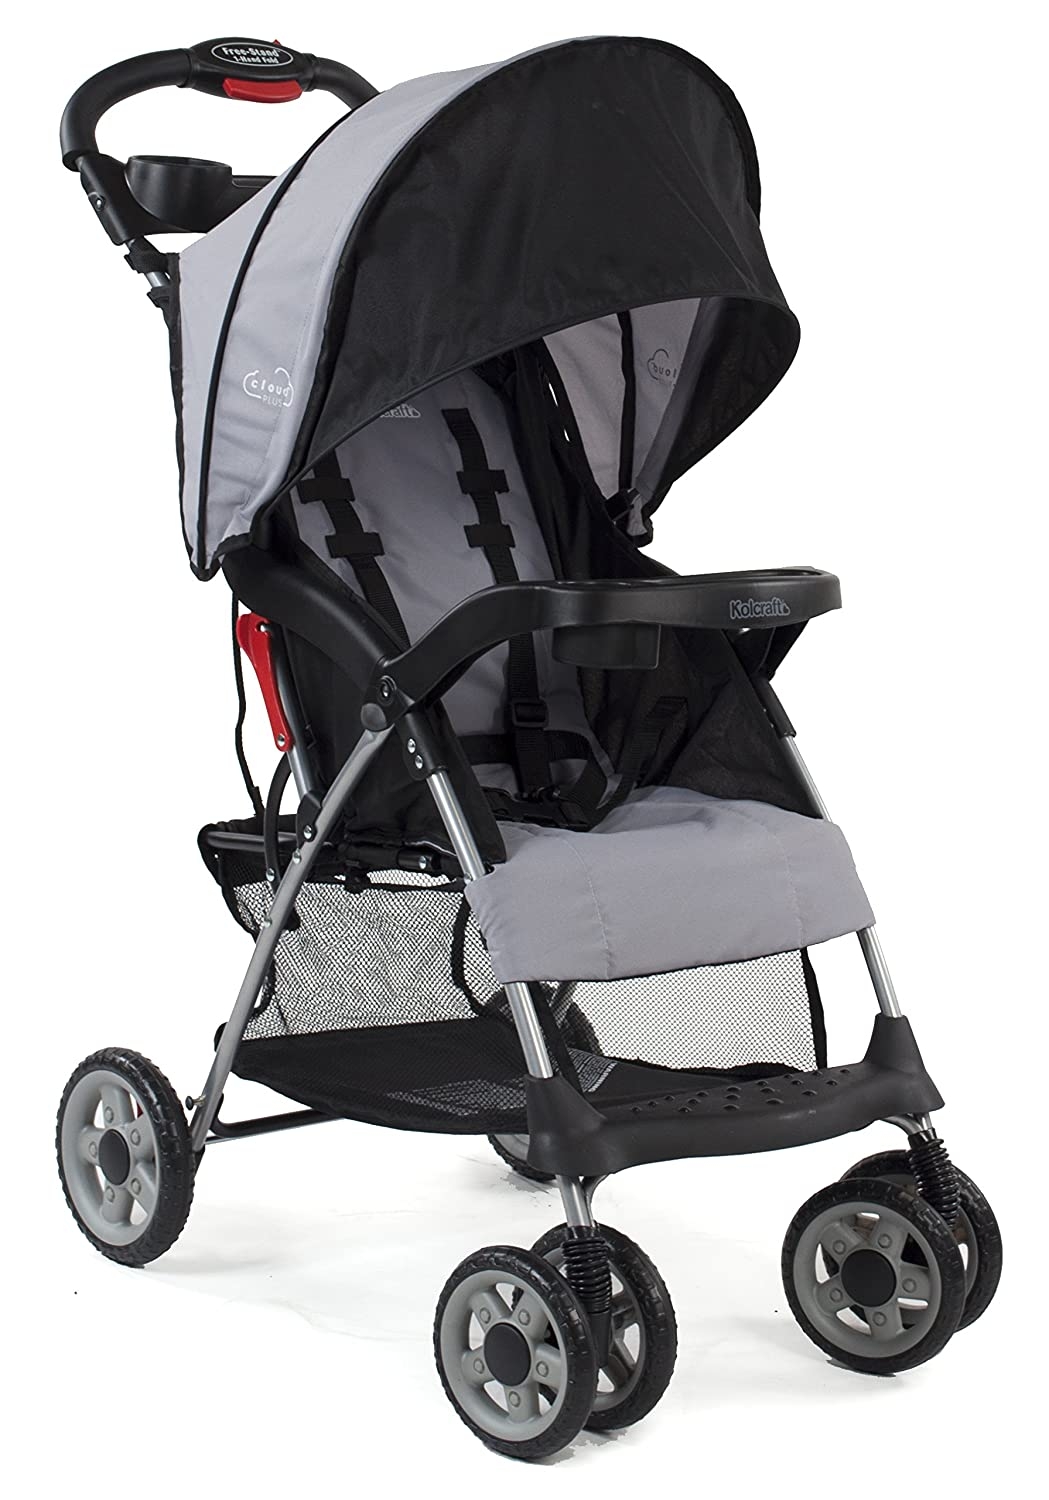 Top 6 Best Lightweight Umbrella Stroller (2020 Review & Buying Guide) 2